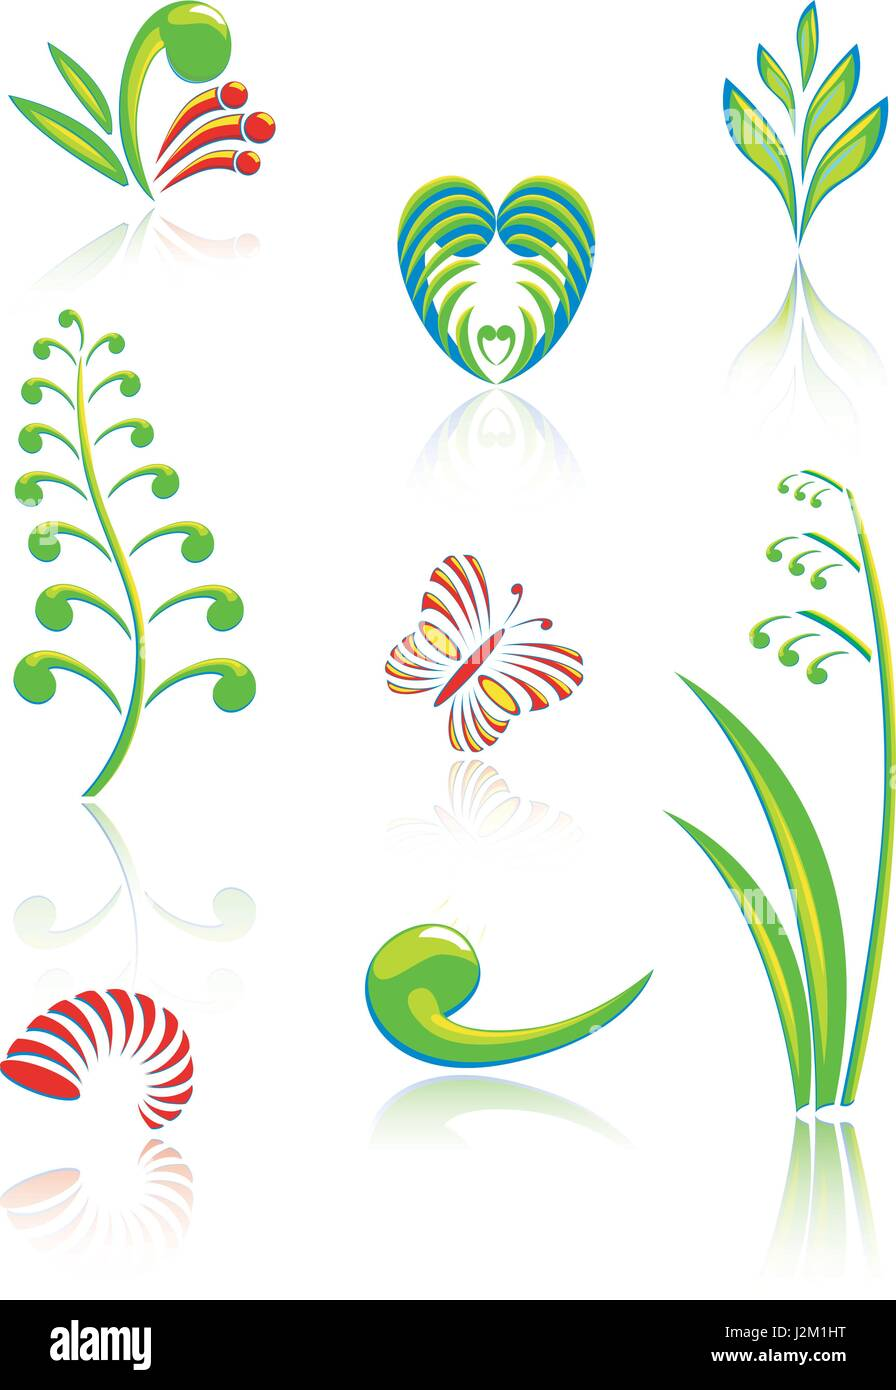 Collection of Maori Koru Design Elements with Color and Reflections - Stock Vector